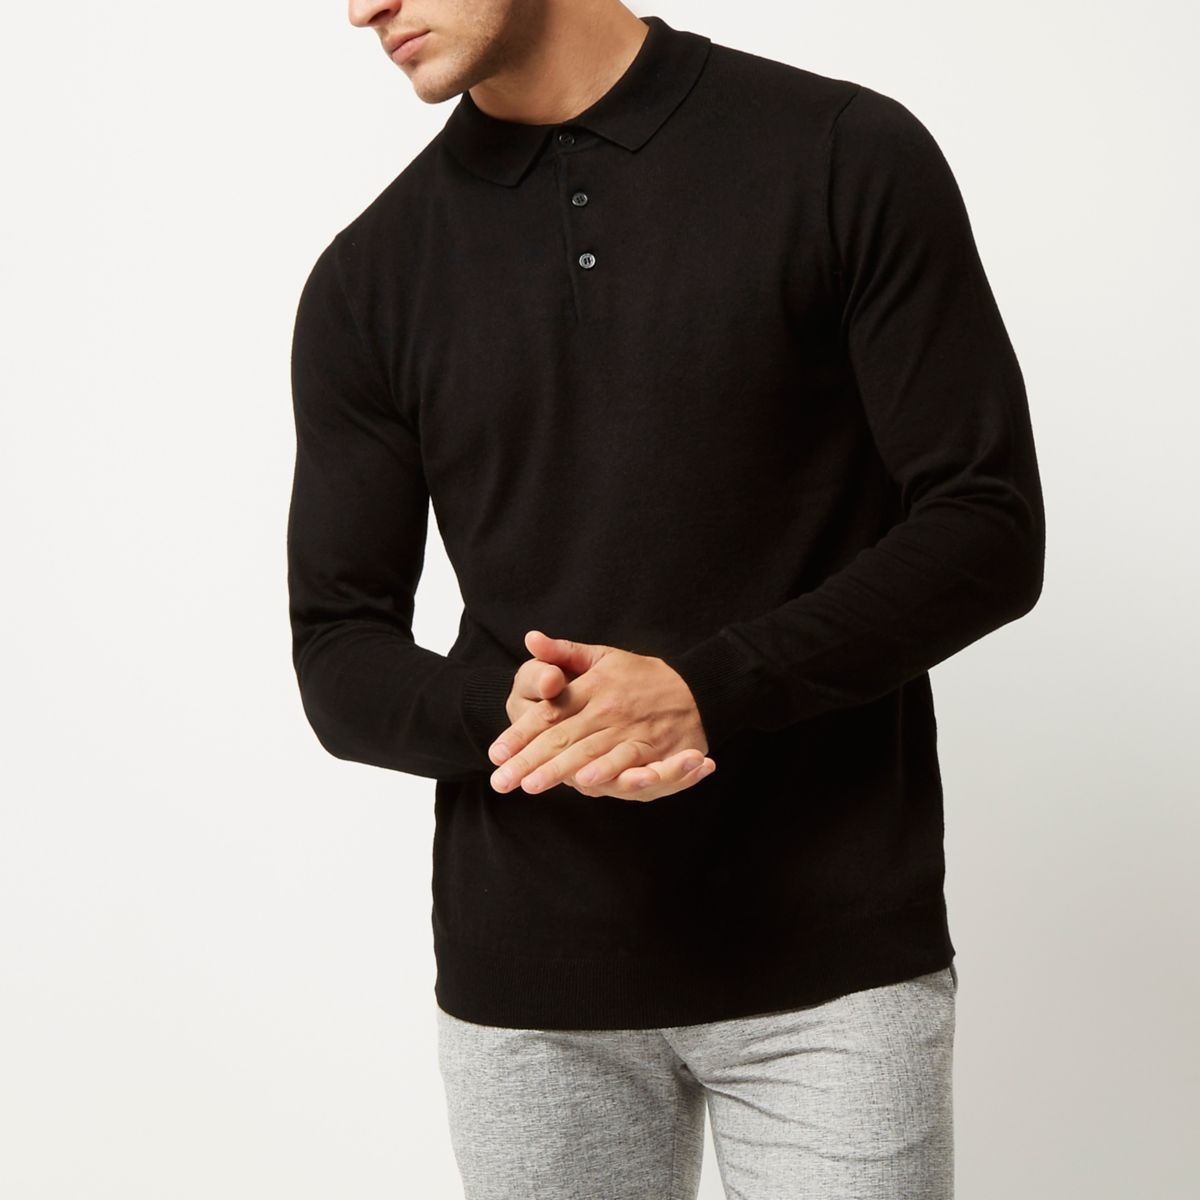 Shop for long sleeve black shirt online at Target. Free shipping on purchases over $35 and save 5% every day with your Target REDcard.